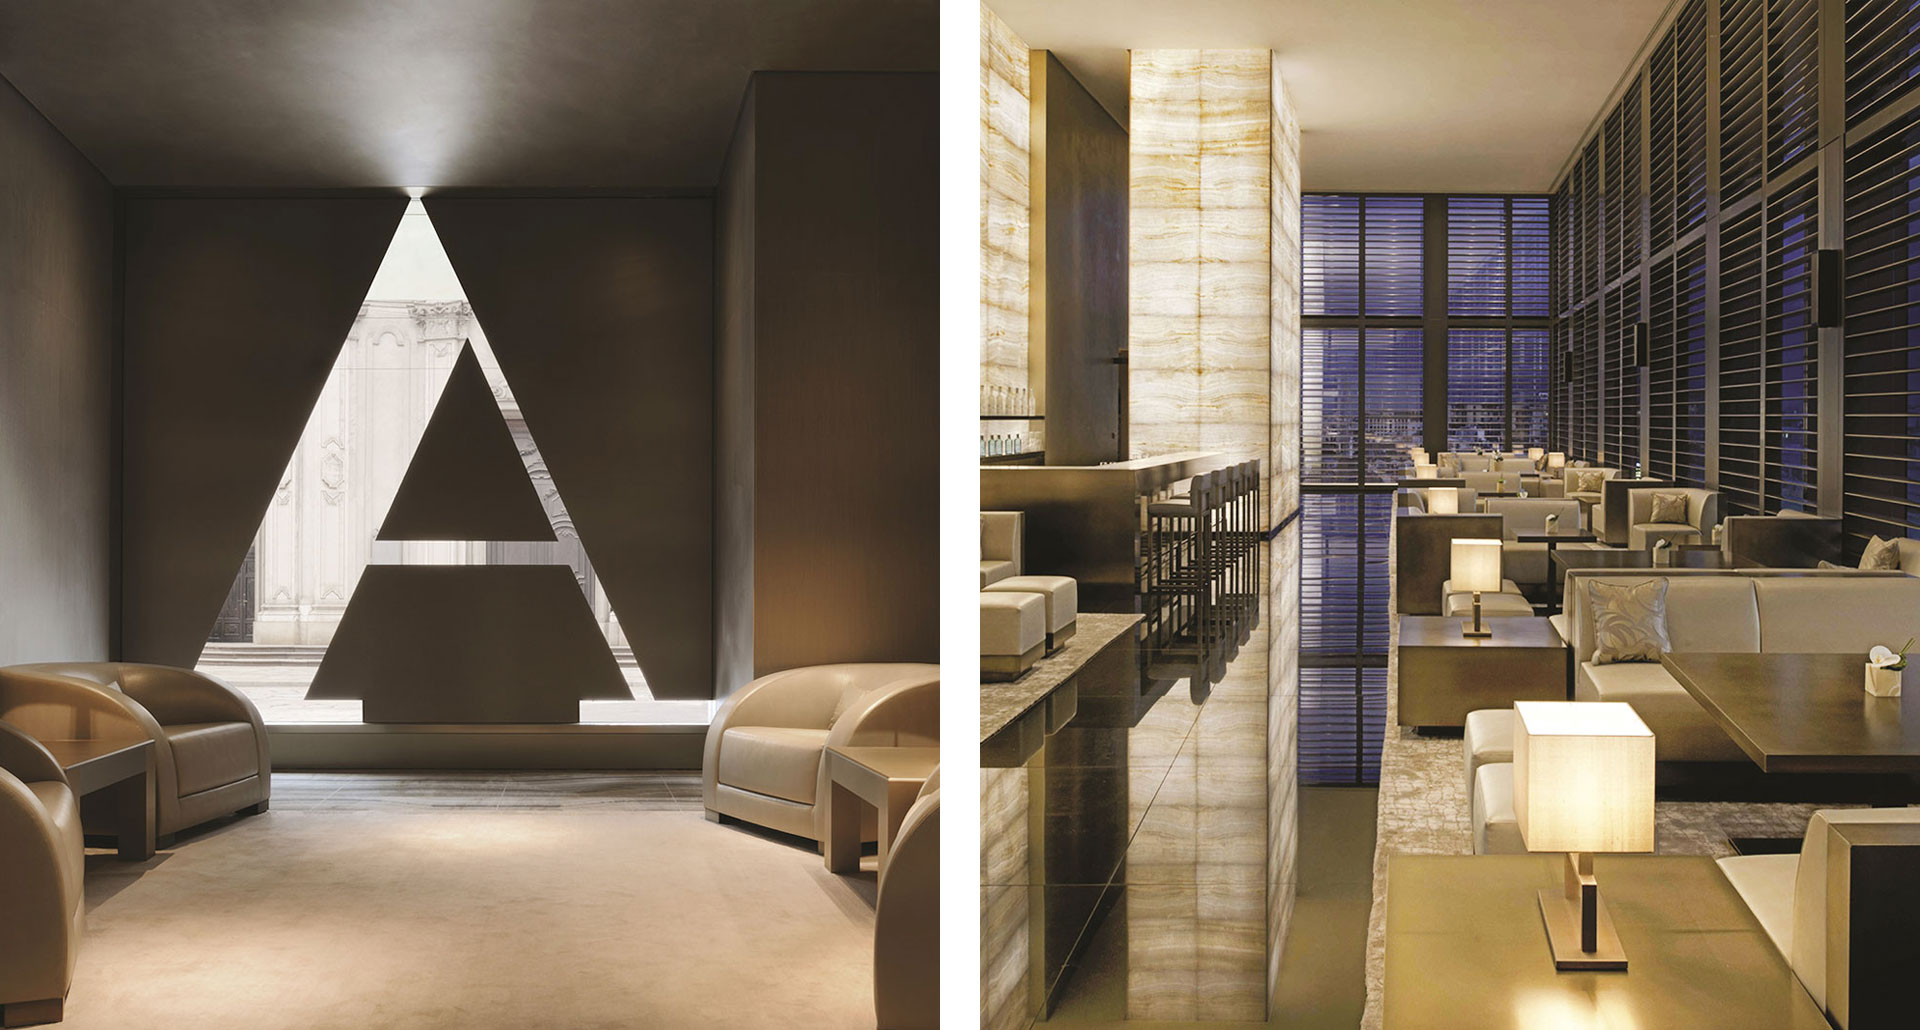 Armani Hotel - boutique hotel in Milan